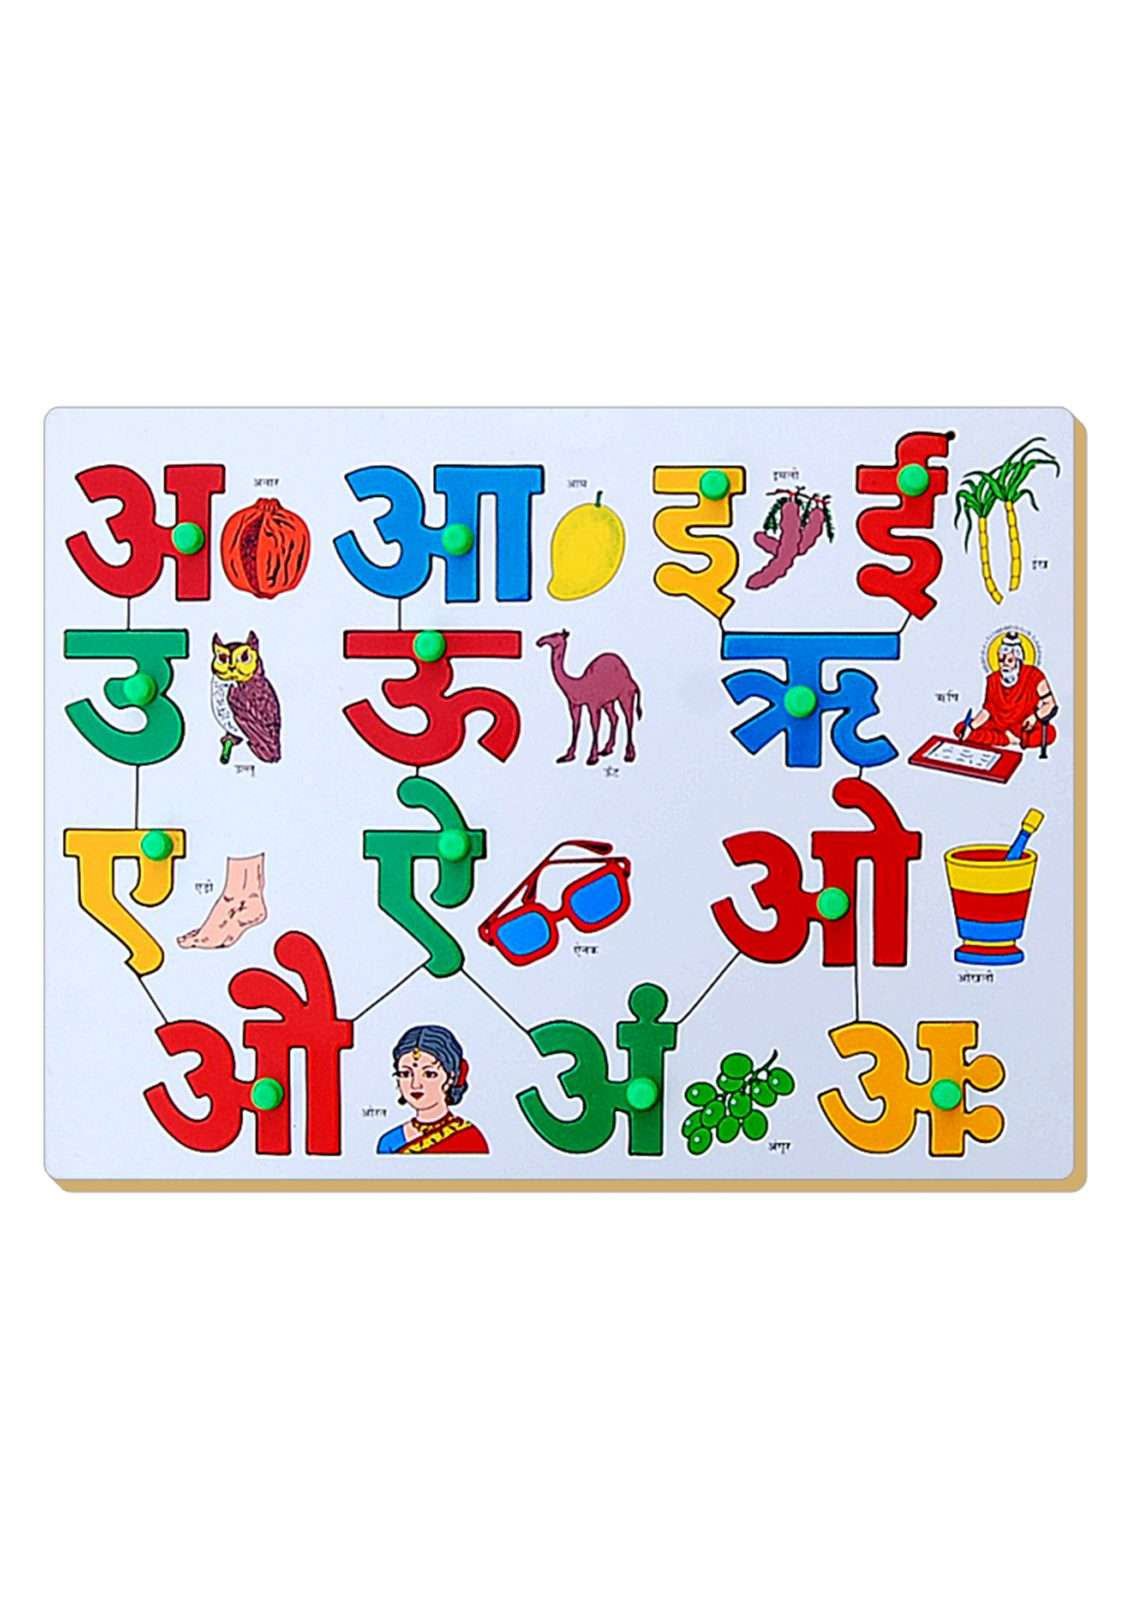 Hindi Alphabets With Pictures Printable